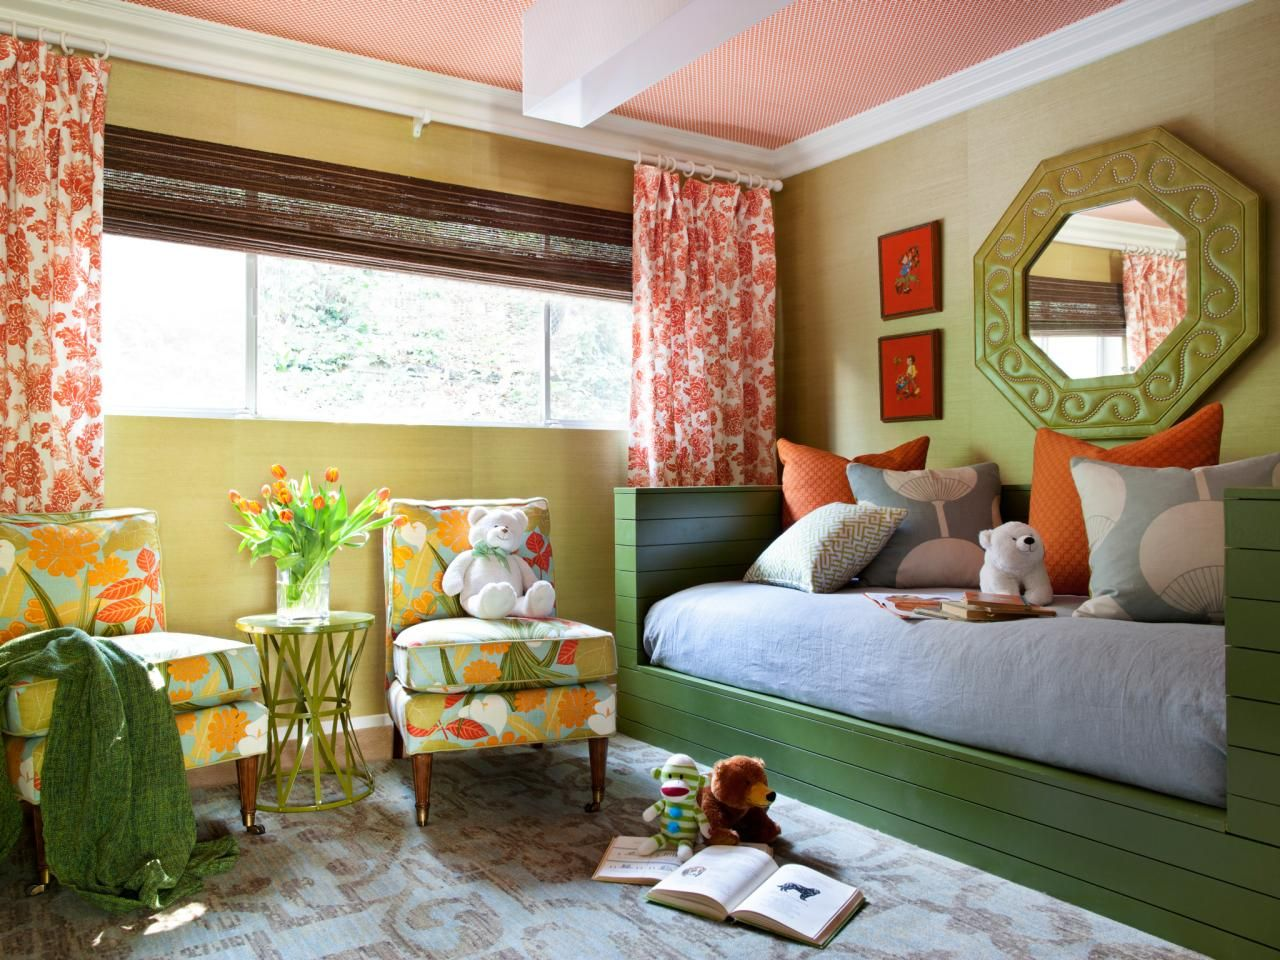 eclectic teen rooms kids room ideas for playroom bedroom bathroom http